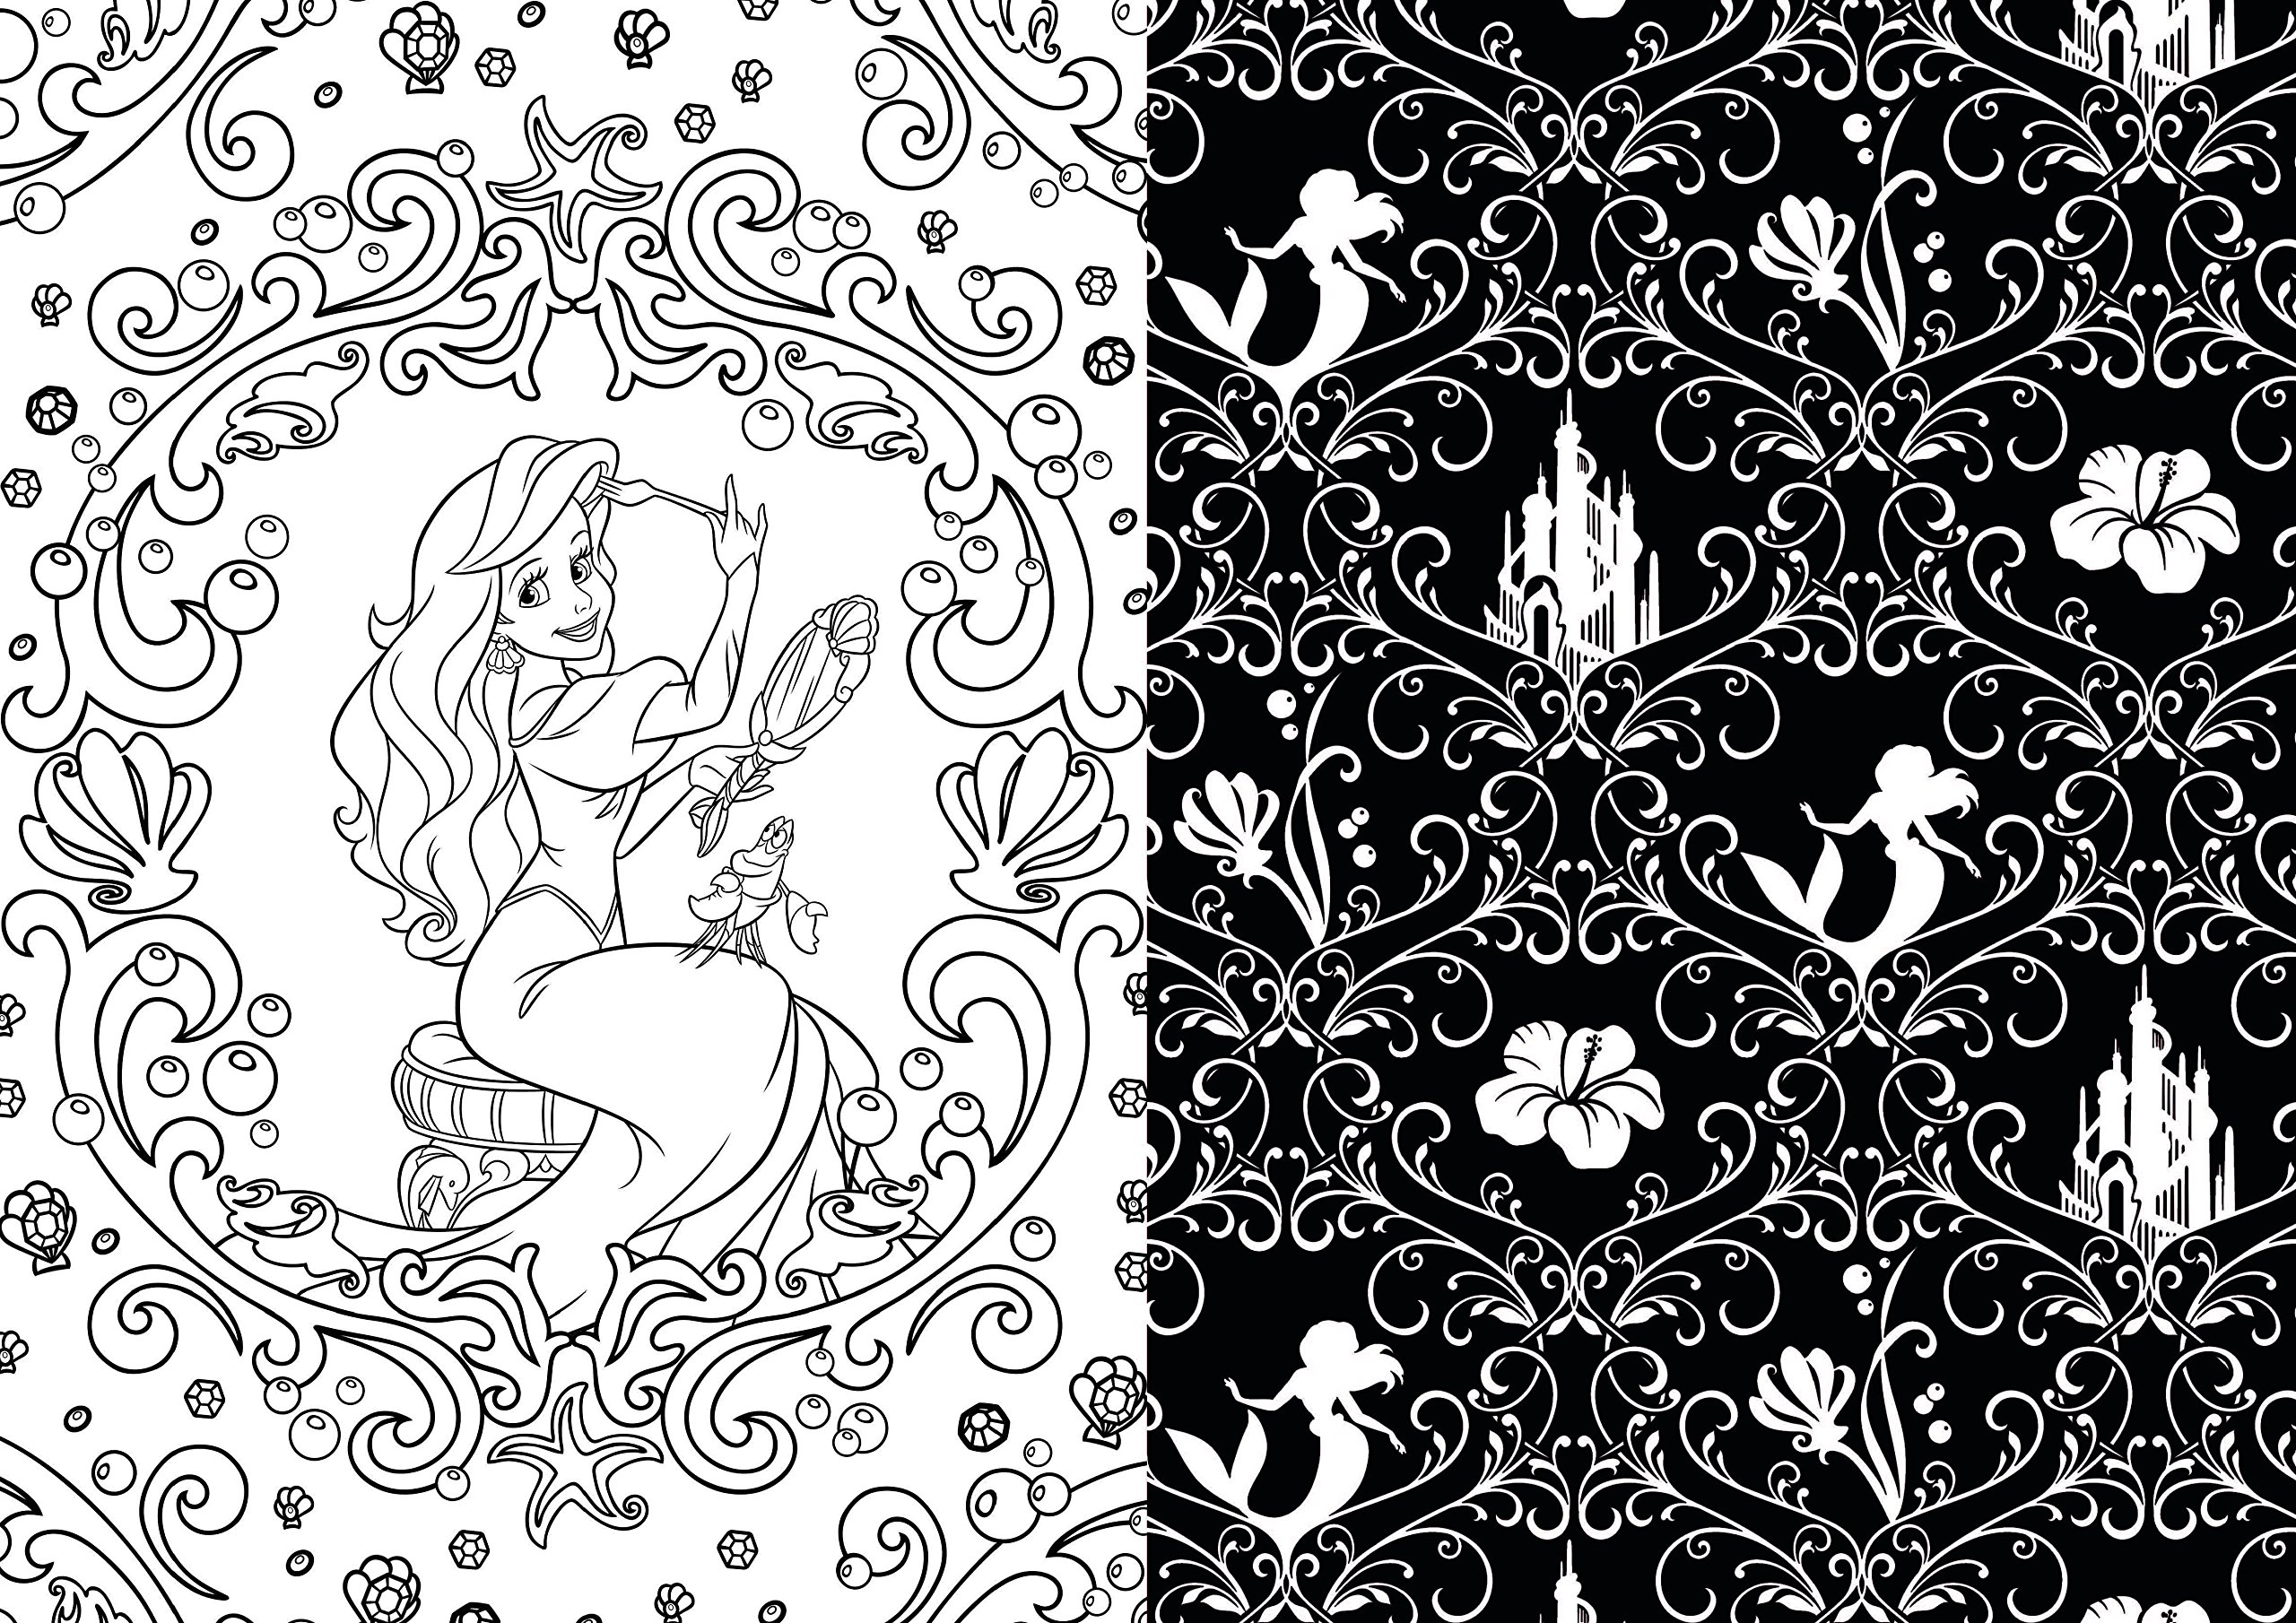 Art Of Coloring Disney Princess 100 Images To Inspire Creativity